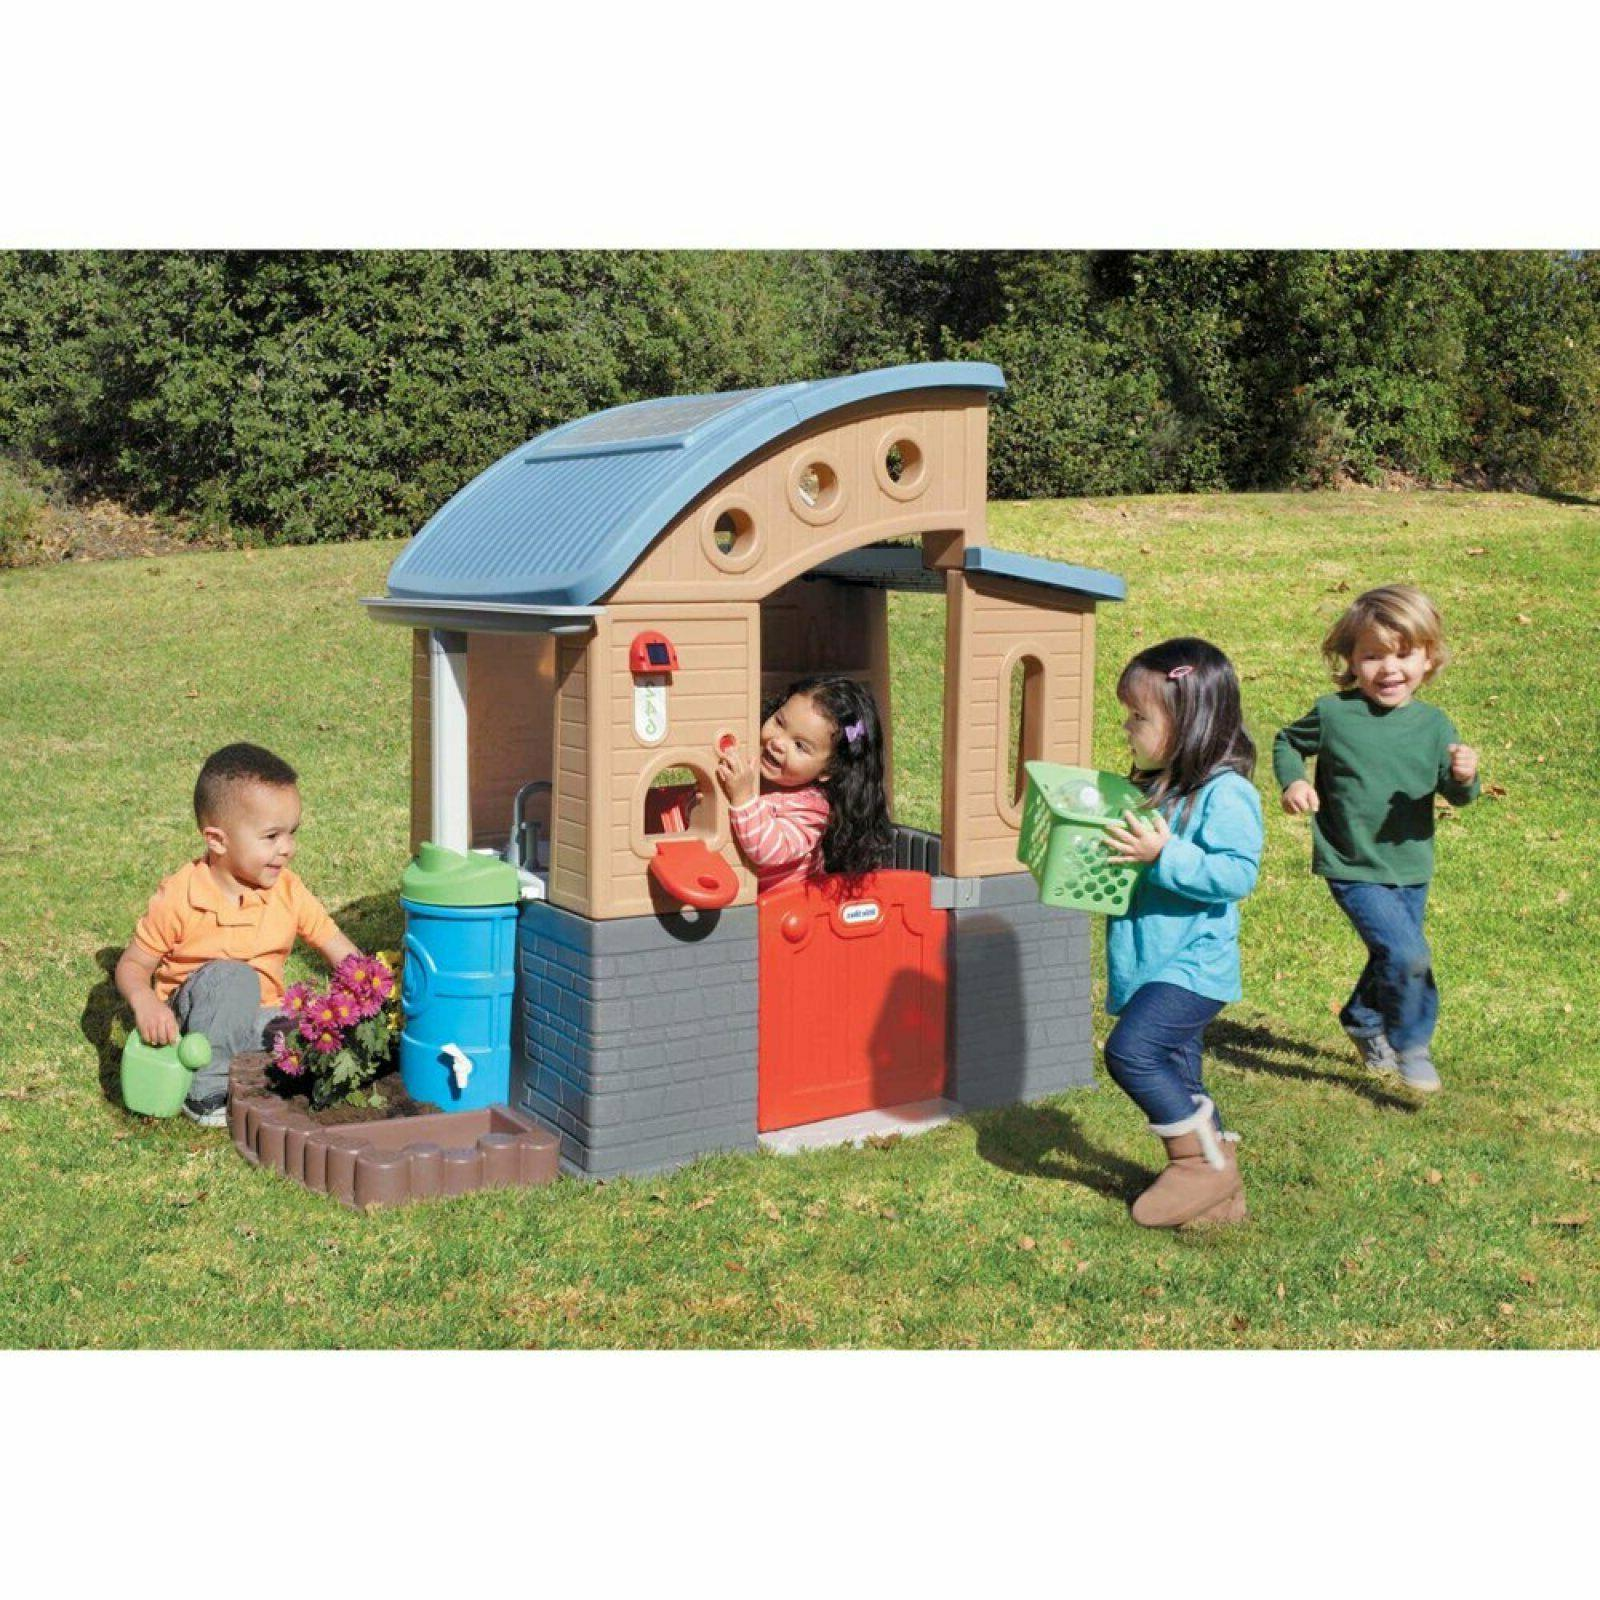 Playhouse Energy Light Outdoor Fun